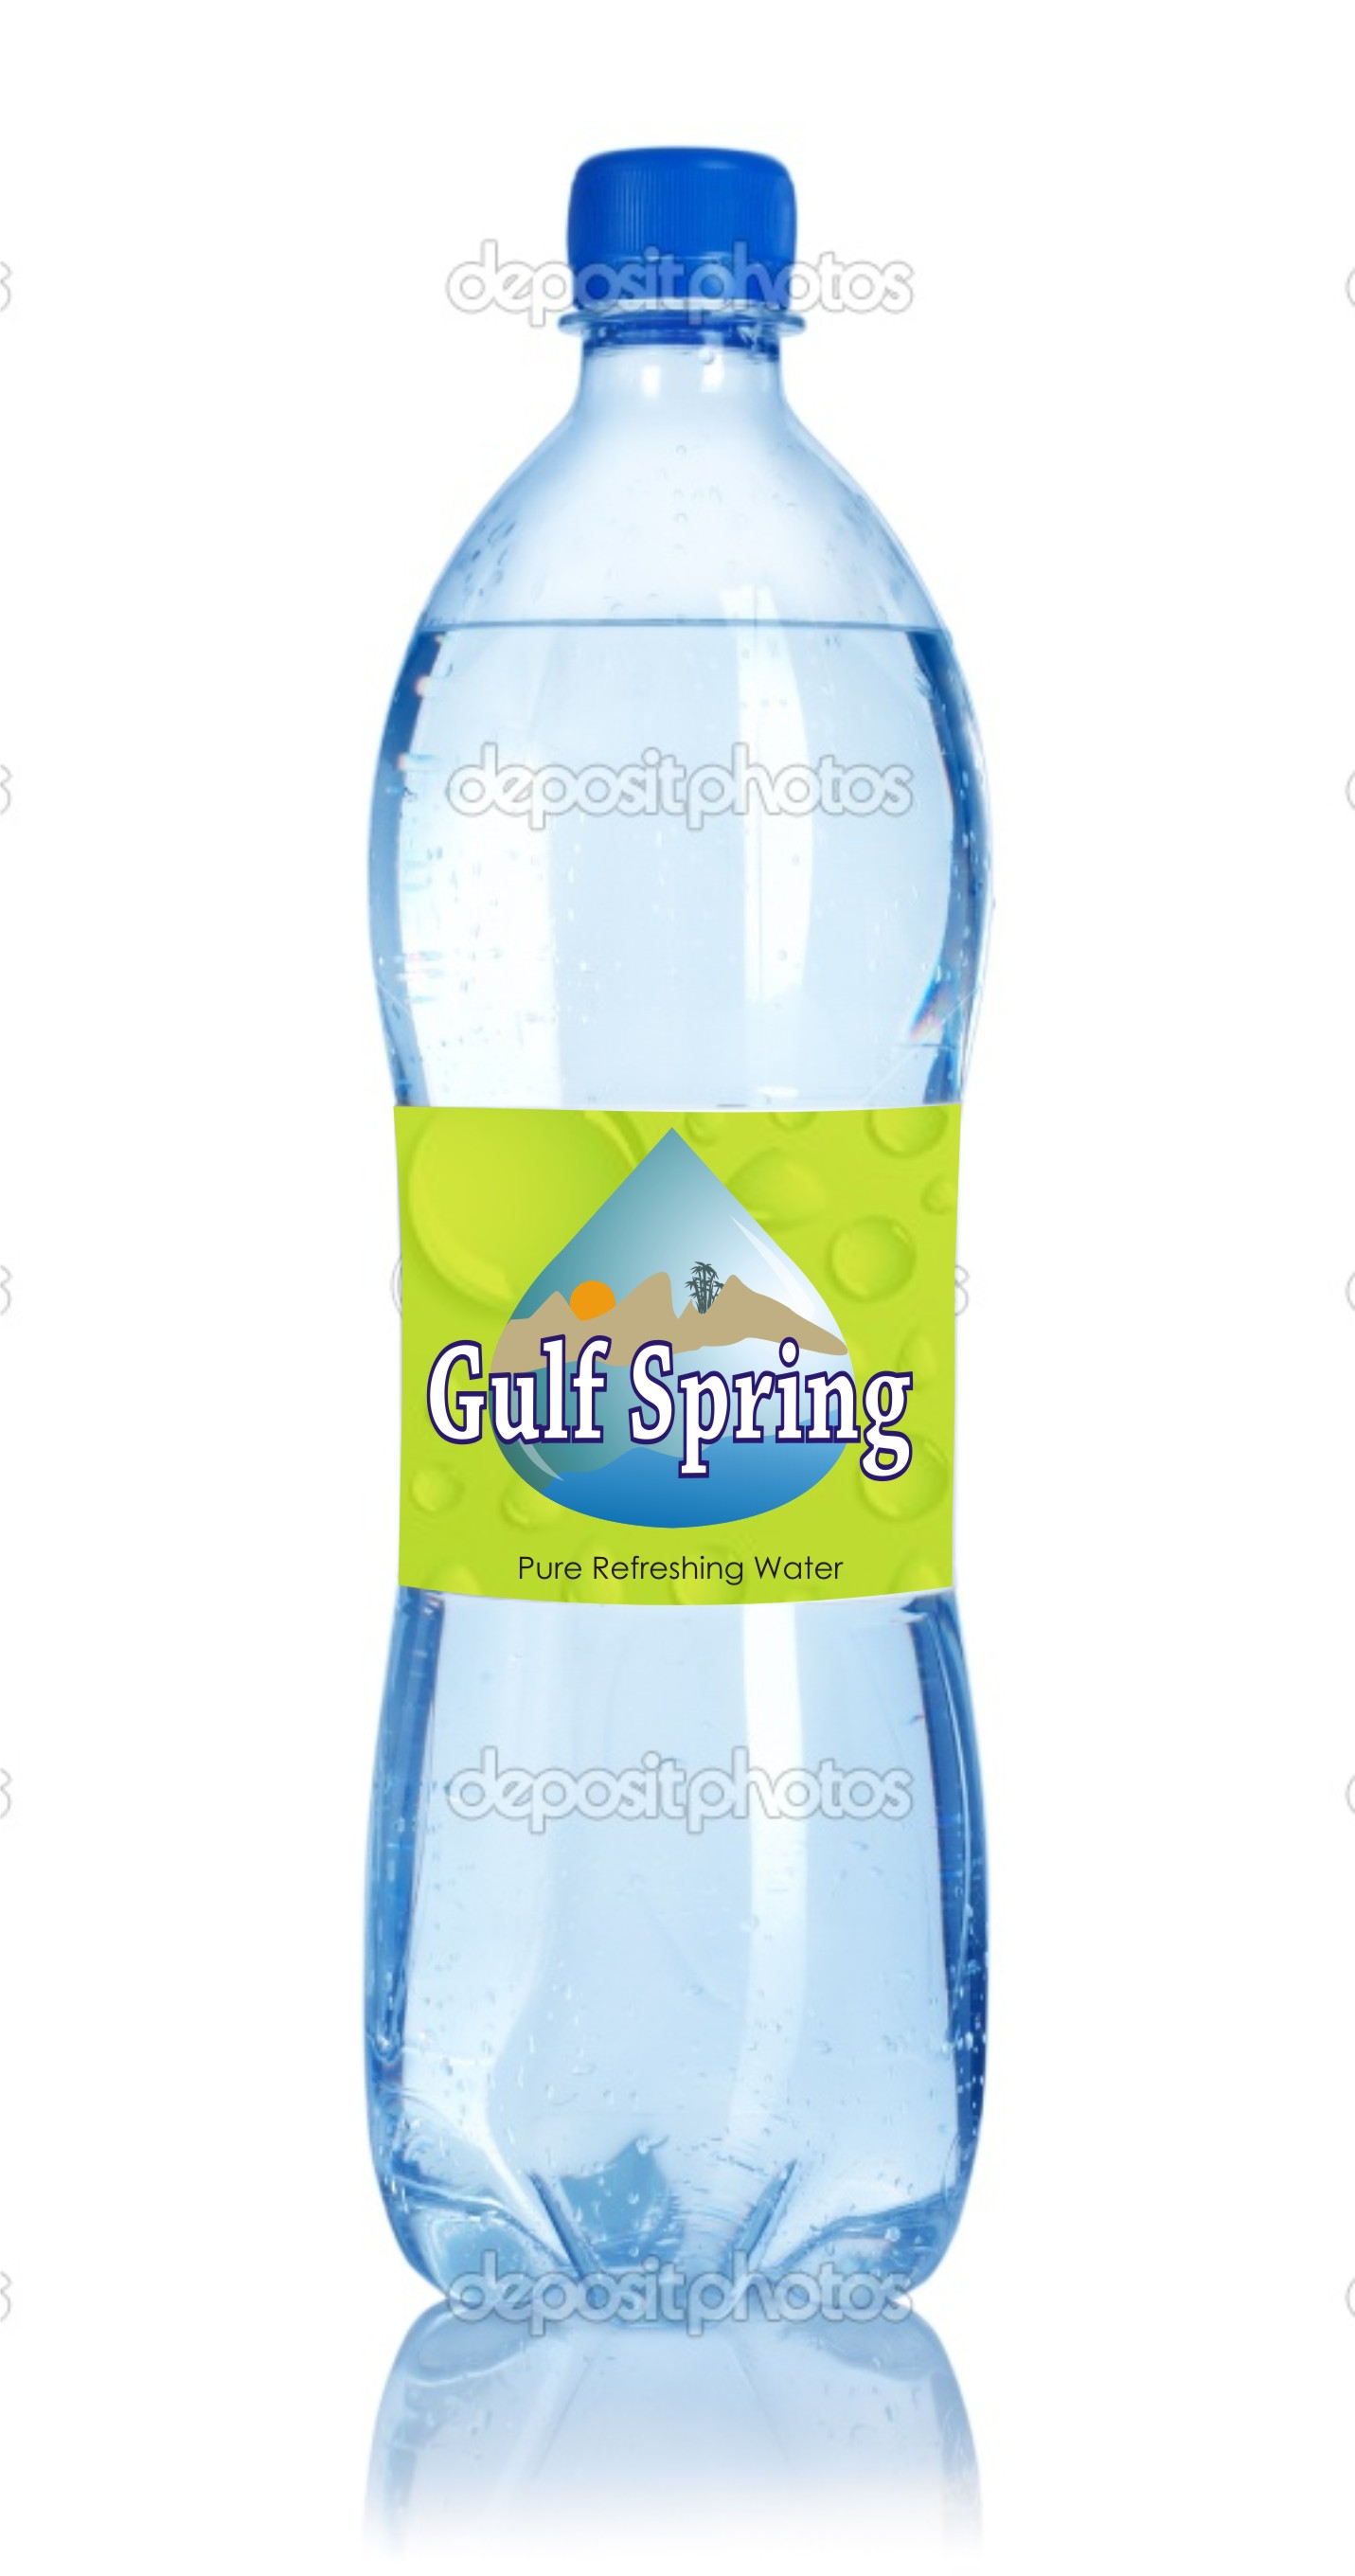 Logo Design by Mahida Kirit Chandrasinh - Entry No. 71 in the Logo Design Contest Inspiring Logo Design for Gulf Spring.